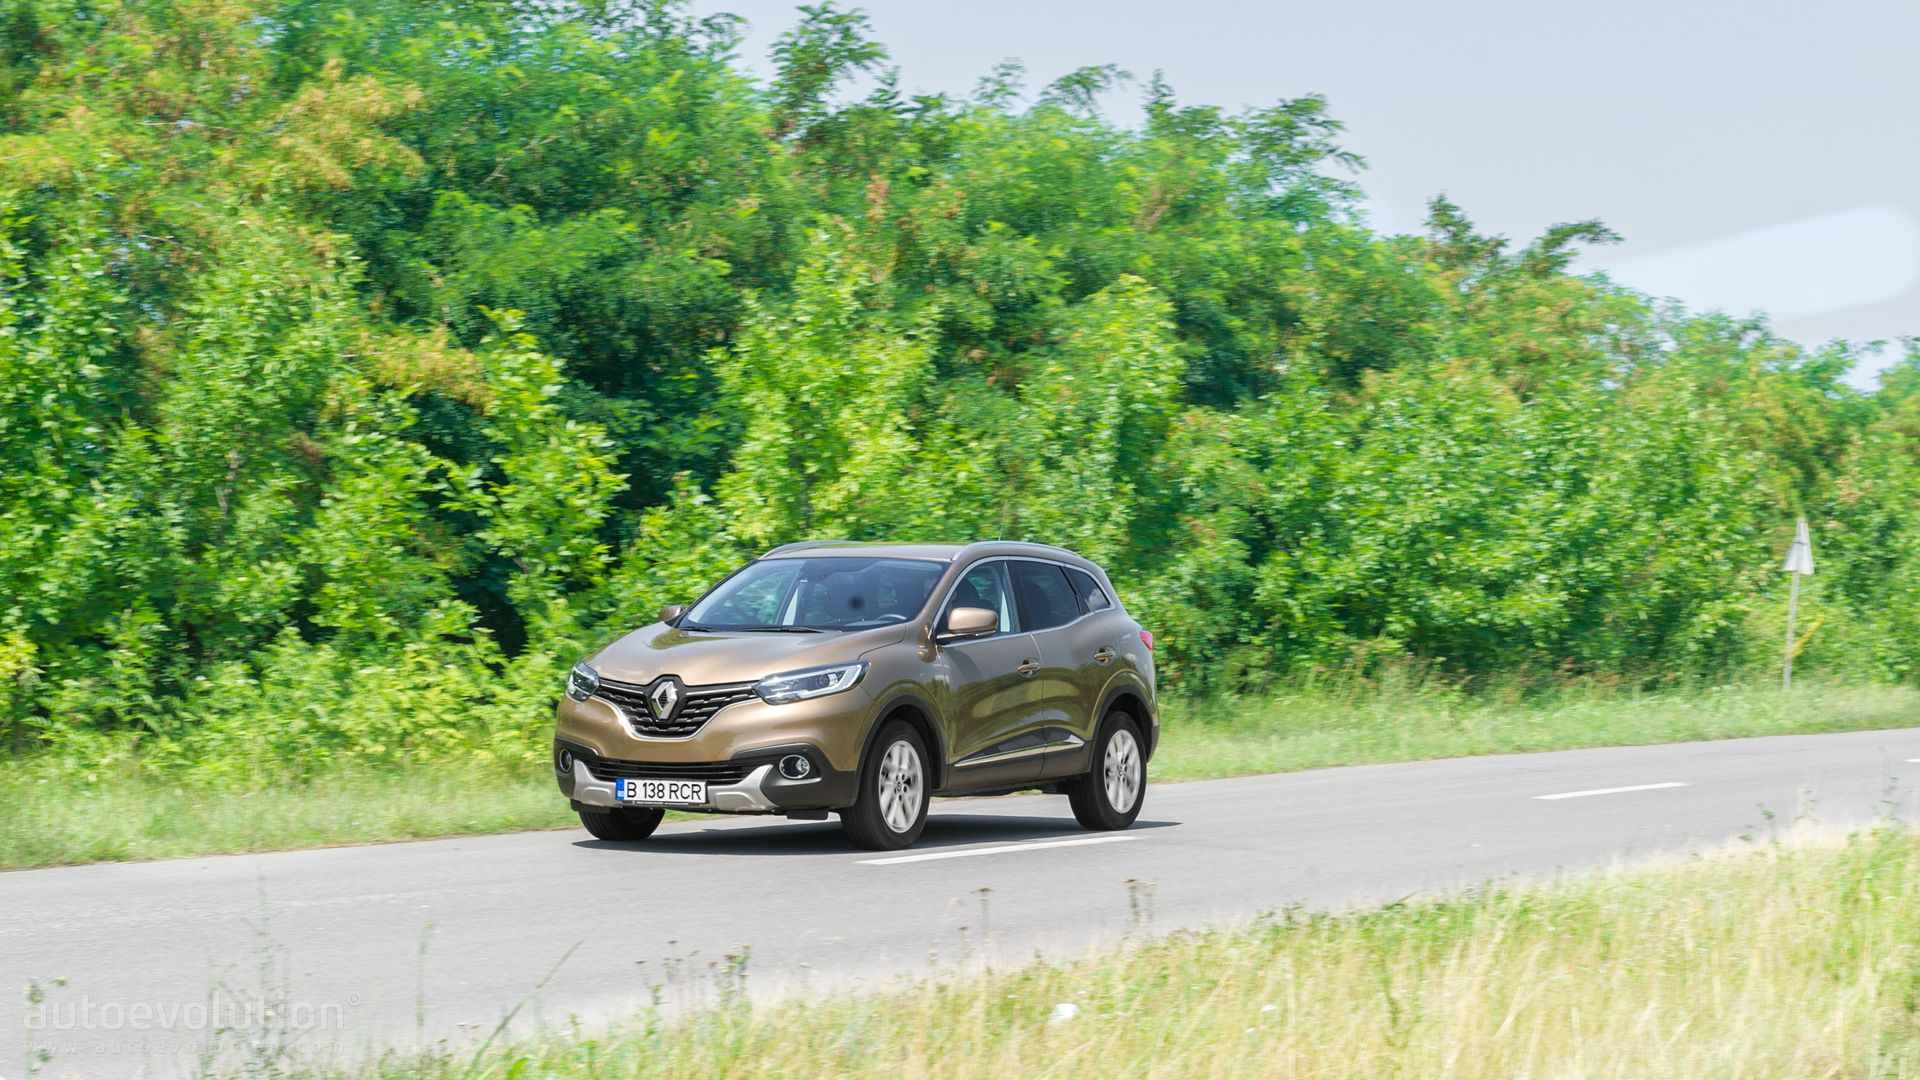 2015 renault kadjar tested better than the qashqai autoevolution. Black Bedroom Furniture Sets. Home Design Ideas